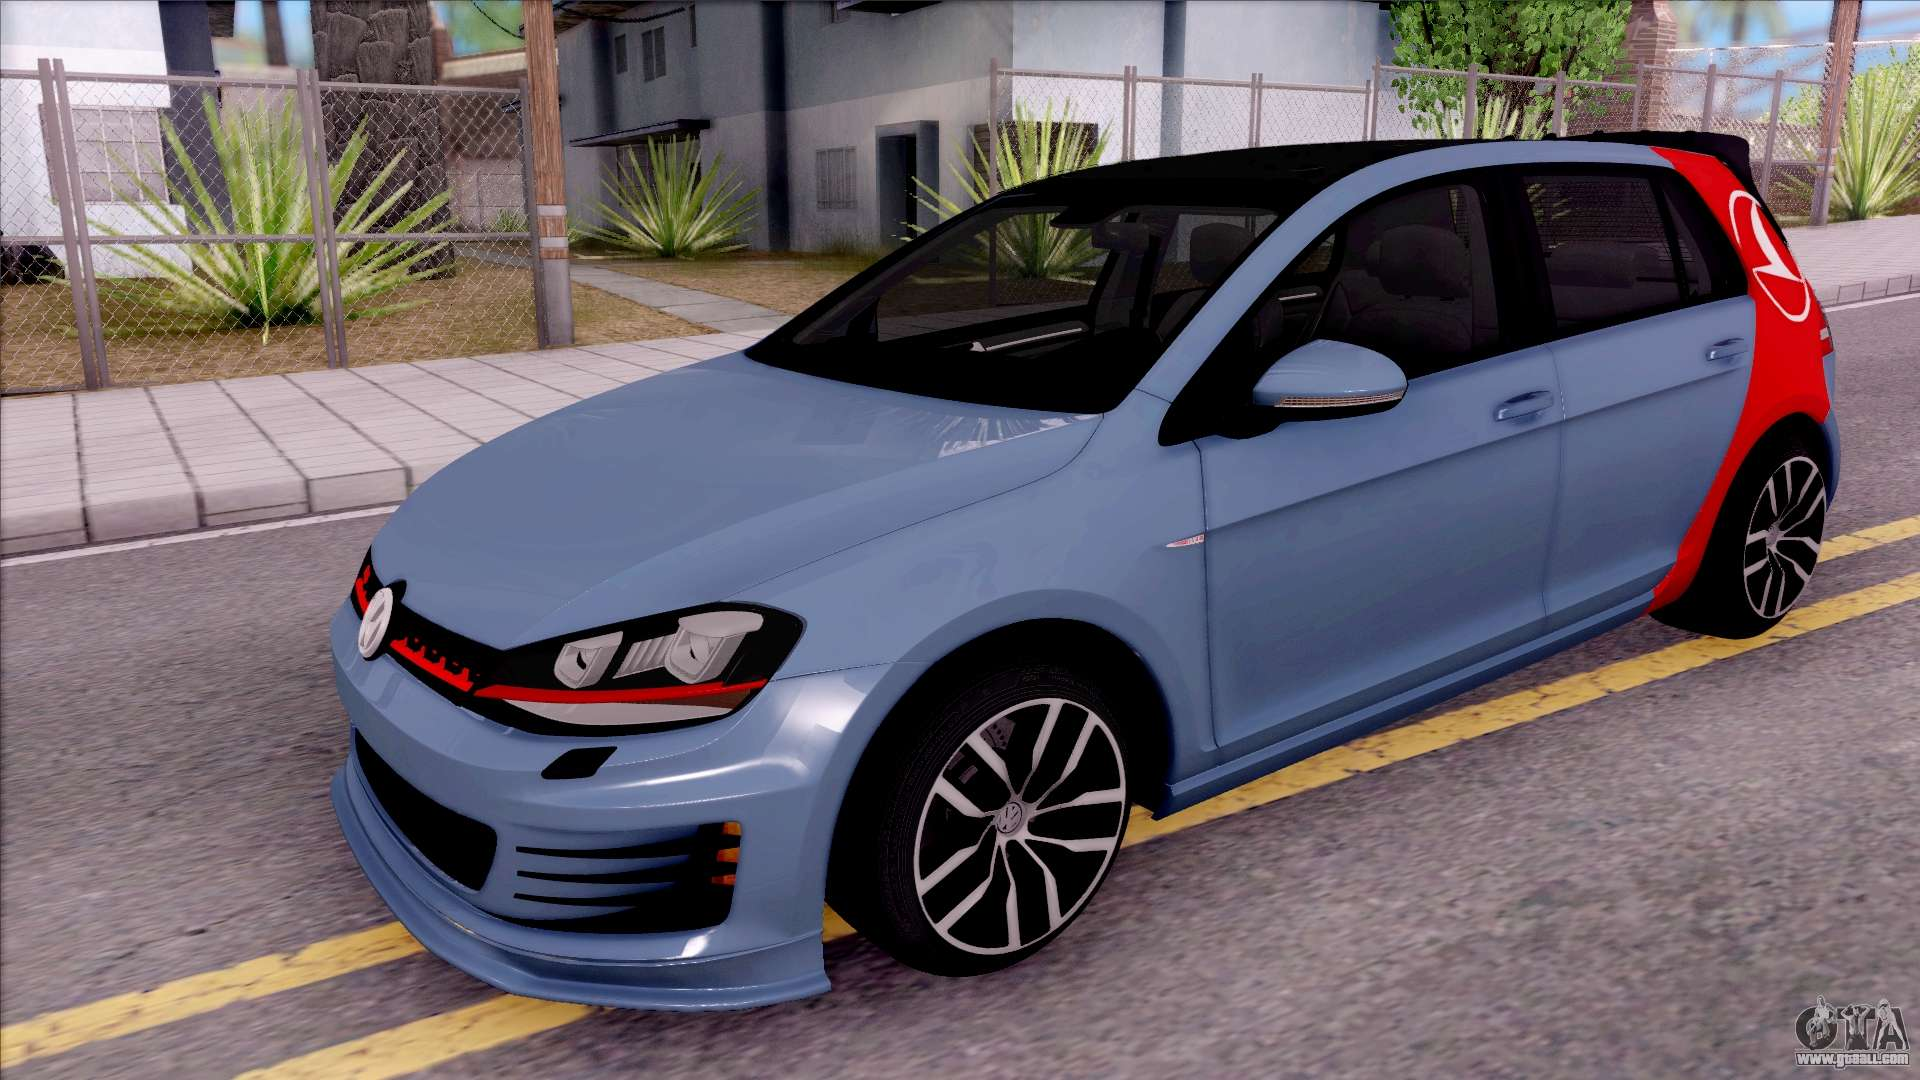 volkswagen golf 7 gti turkish airlines for gta san andreas. Black Bedroom Furniture Sets. Home Design Ideas